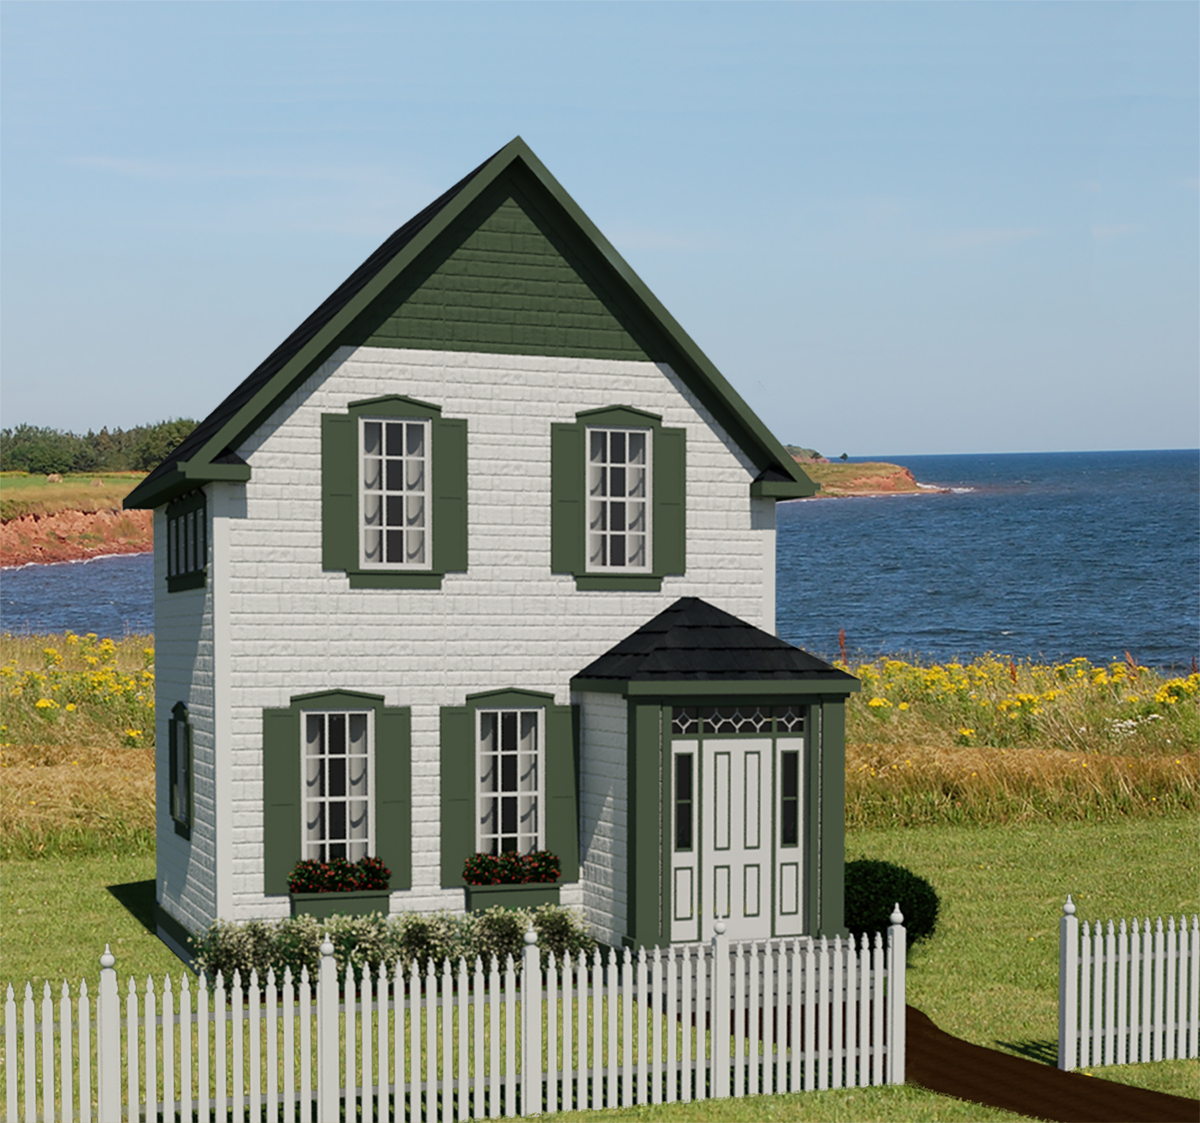 Prince edward island 597 robinson plans for Small house plans